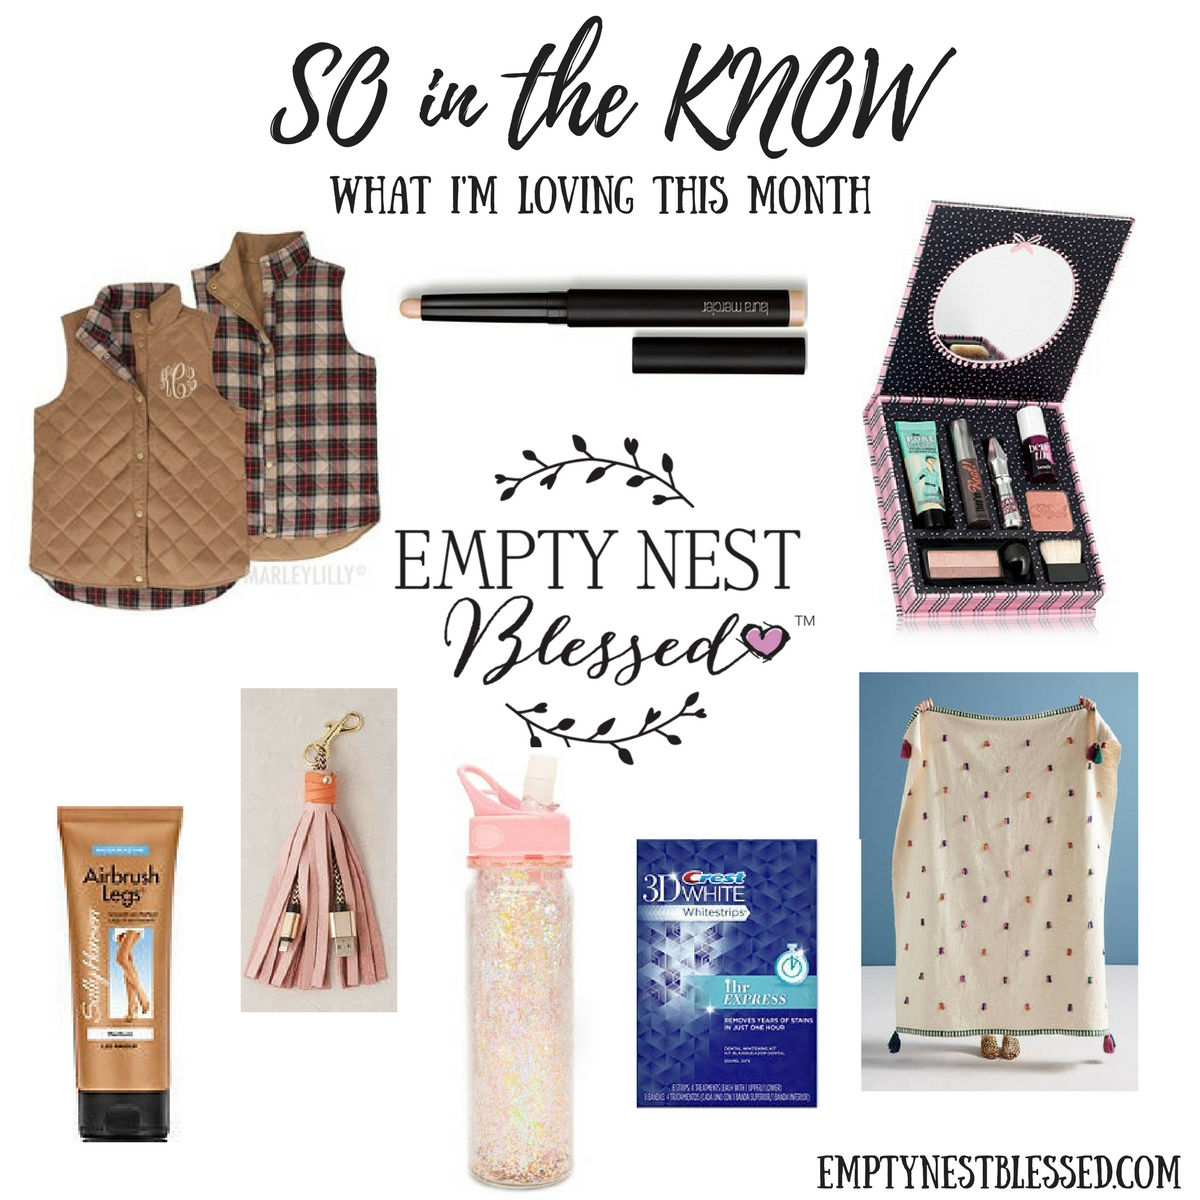 SO in the KNOW: What I'm Learning & Loving in September